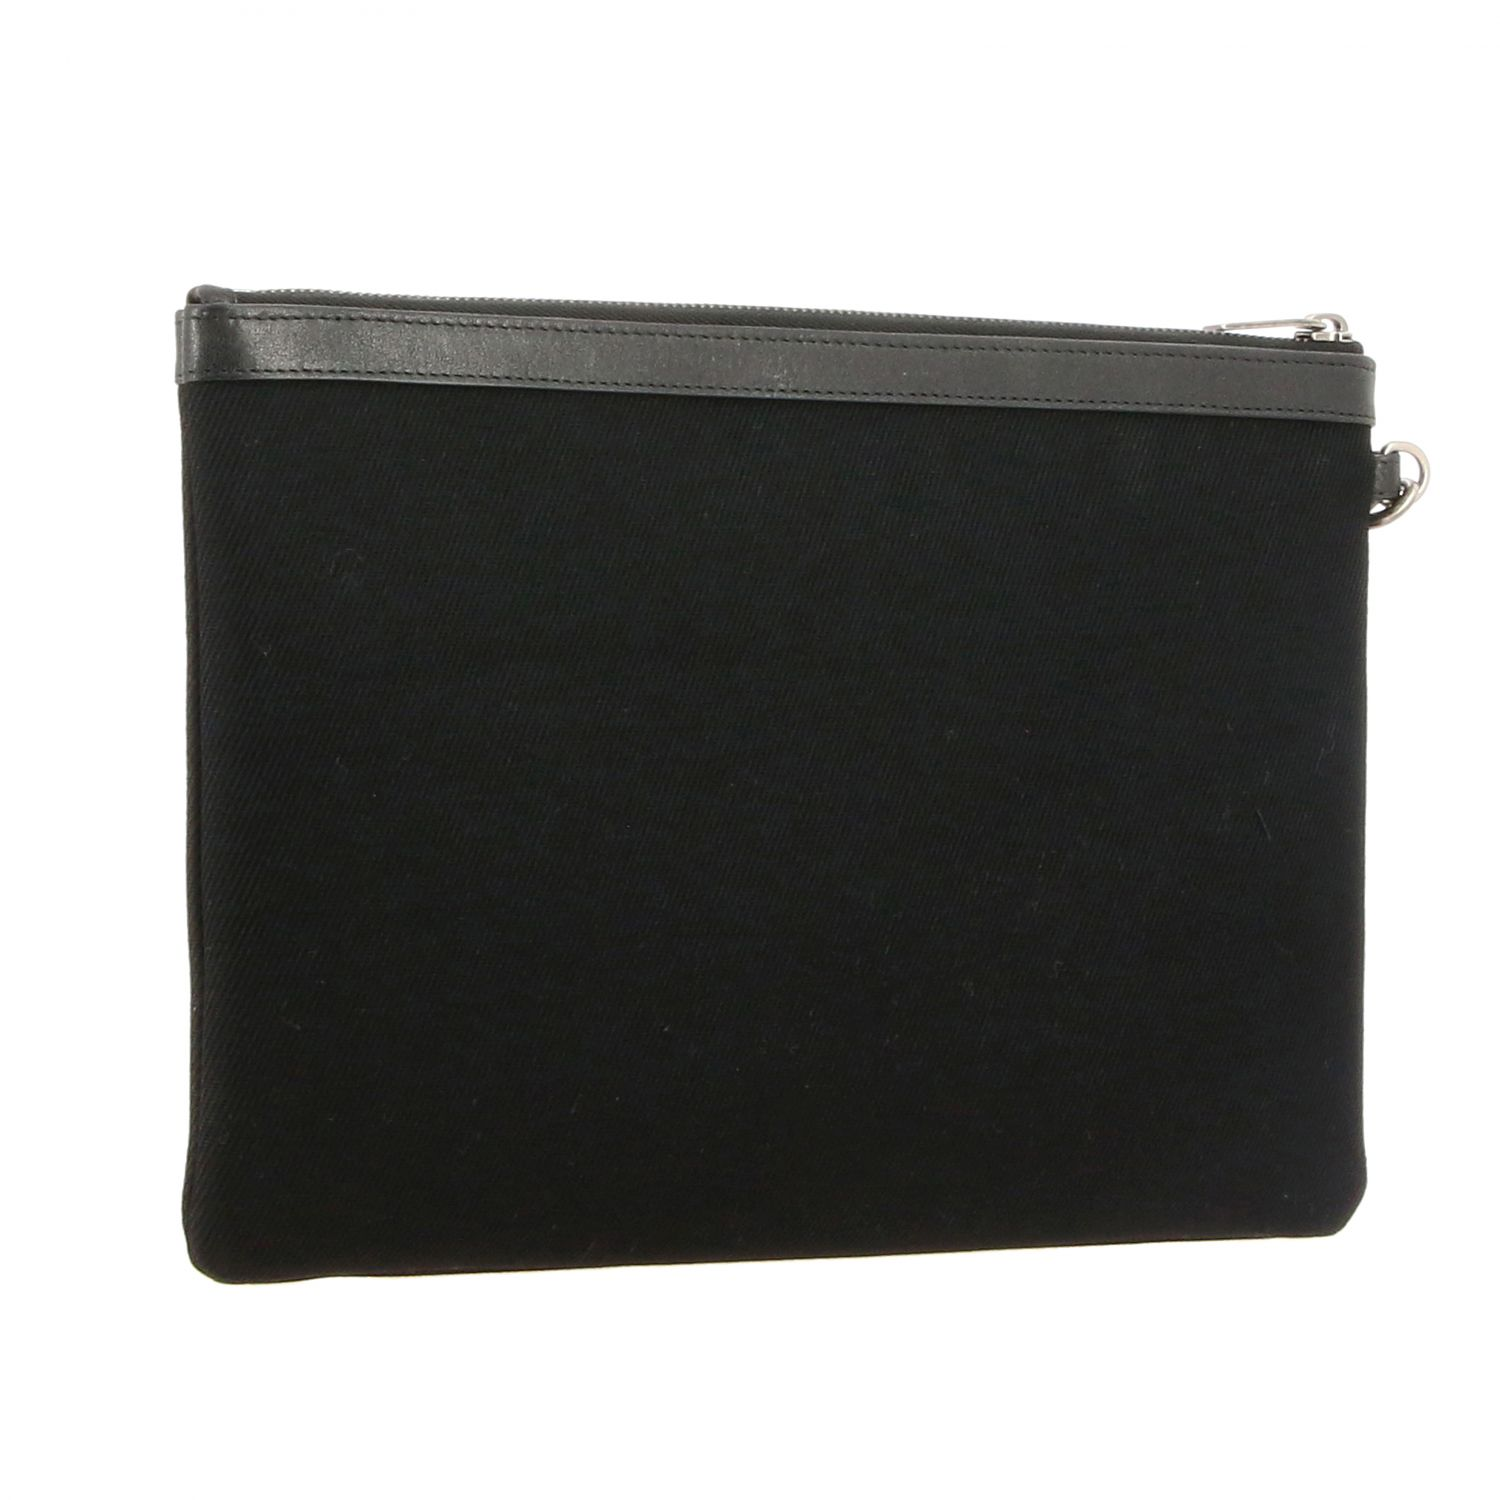 Pochette Saint Laurent in canvas con scritta Rive Gauche nero 3